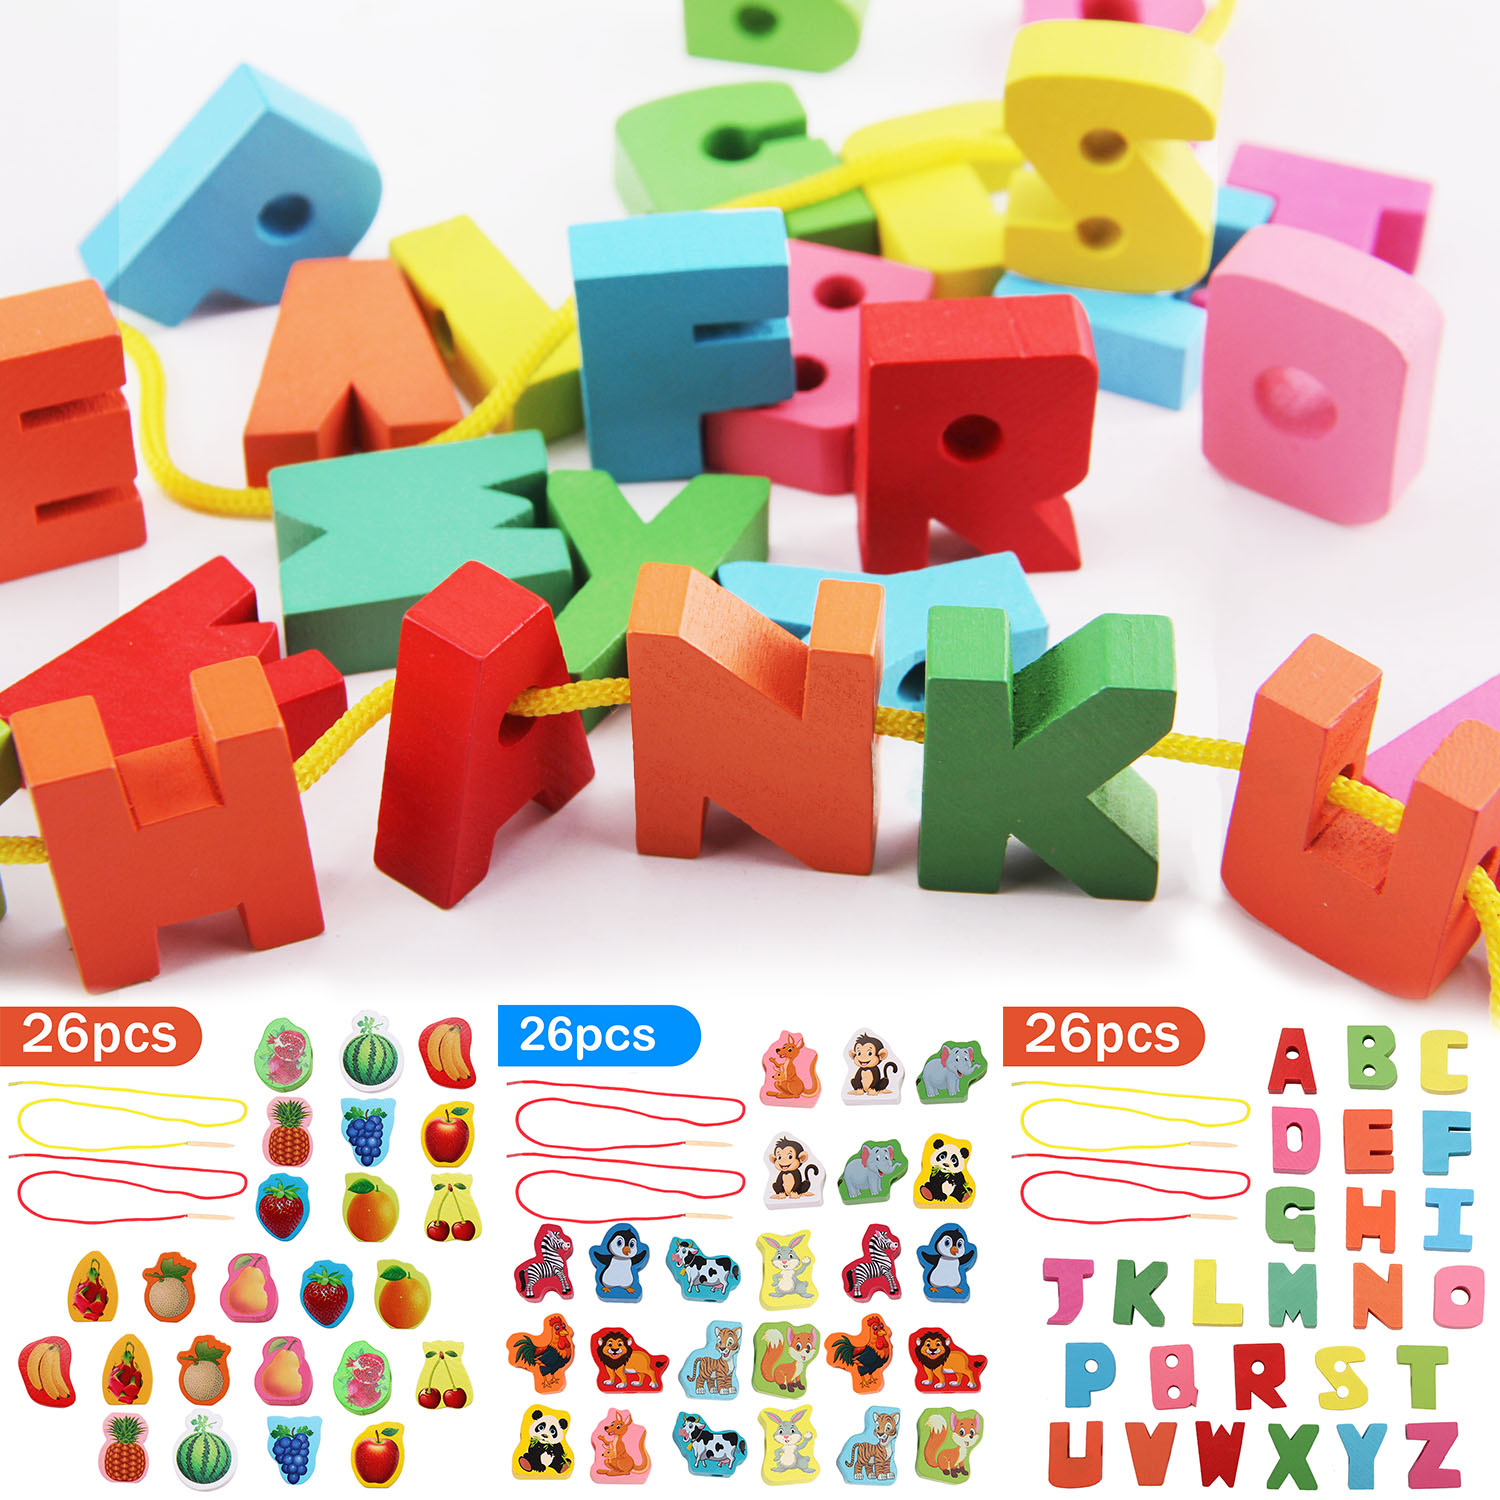 26pcs Lacing Beads Toys Funny Wooden String Threading Beads Montessori Educational Toys for Toddlers Children Kids